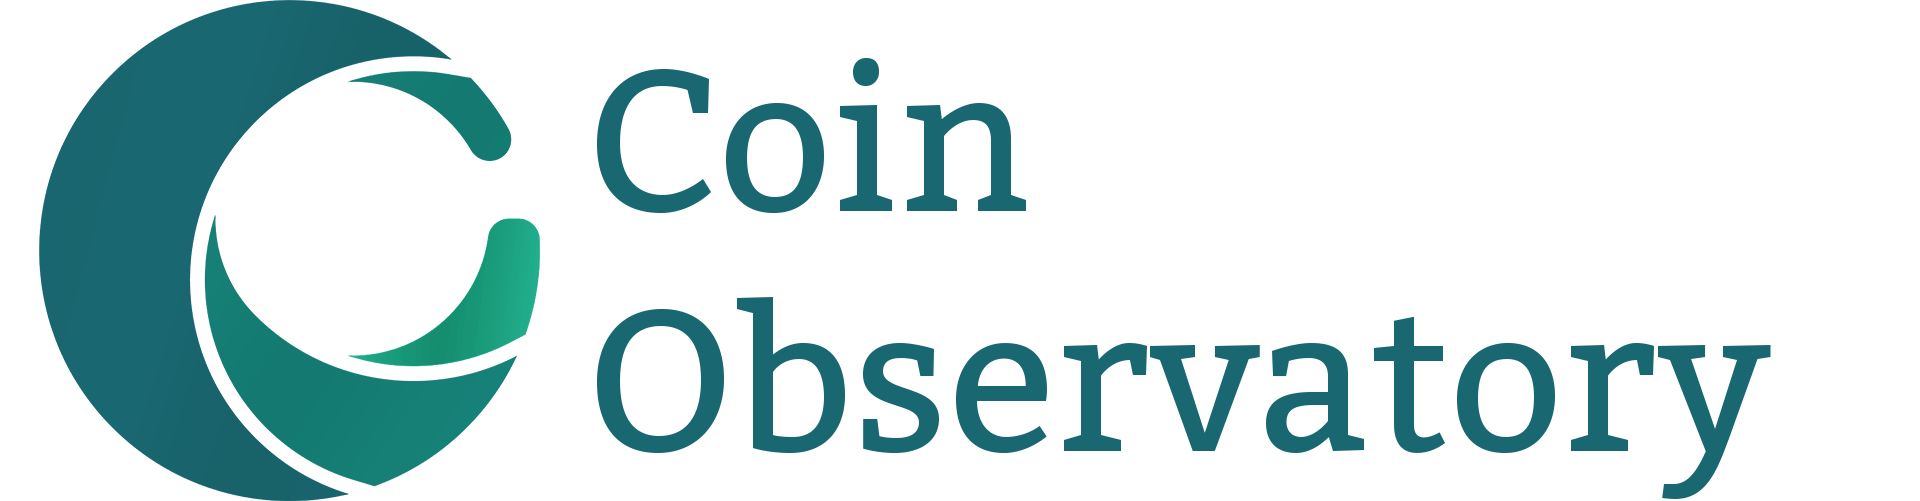 Coin Observatory